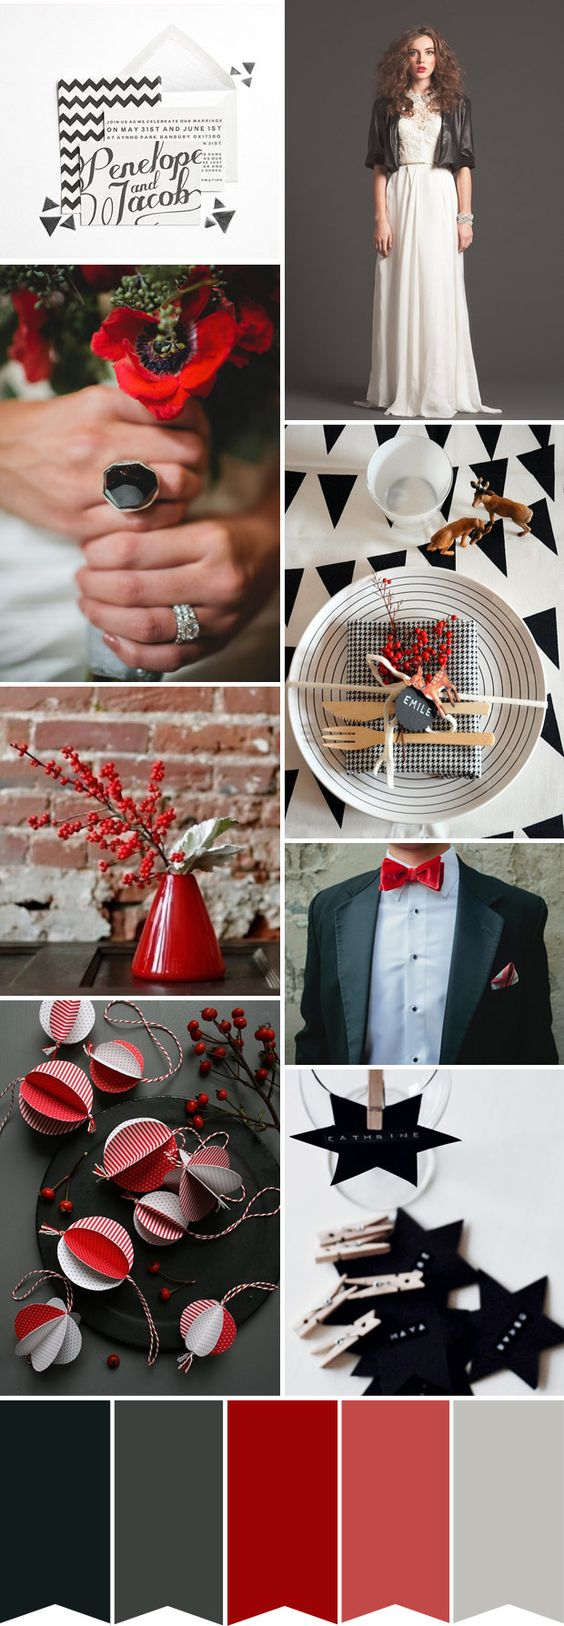 Black White and Red - A Modern Xmas Colour Palette | onefabday.com